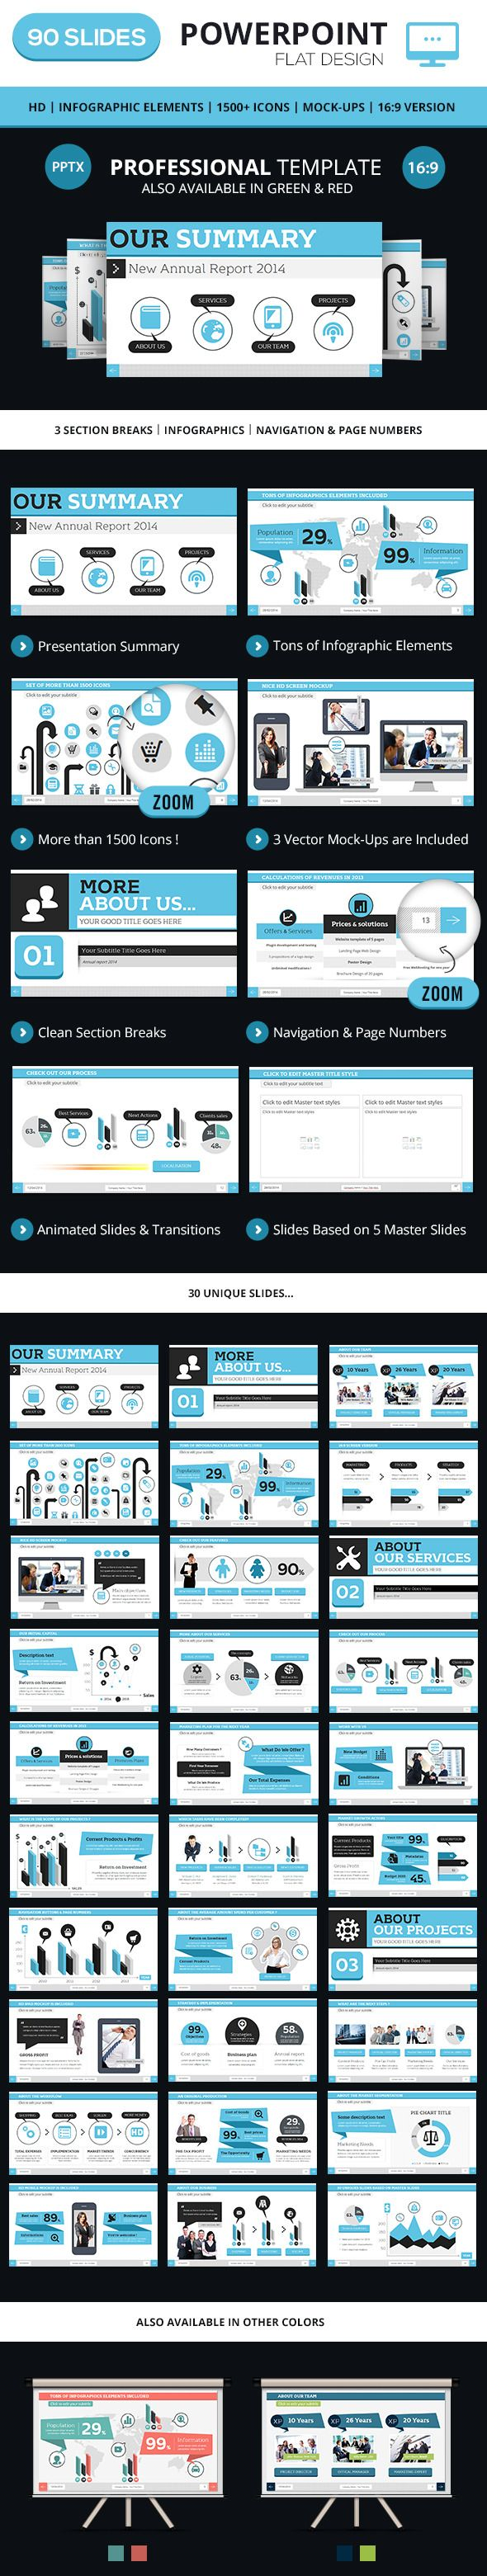 Professional PowerPoint Business Template — Powerpoint PPTX #white #icons • Available here → https://graphicriver.net/item/professional-powerpoint-business-template/7489847?ref=pxcr